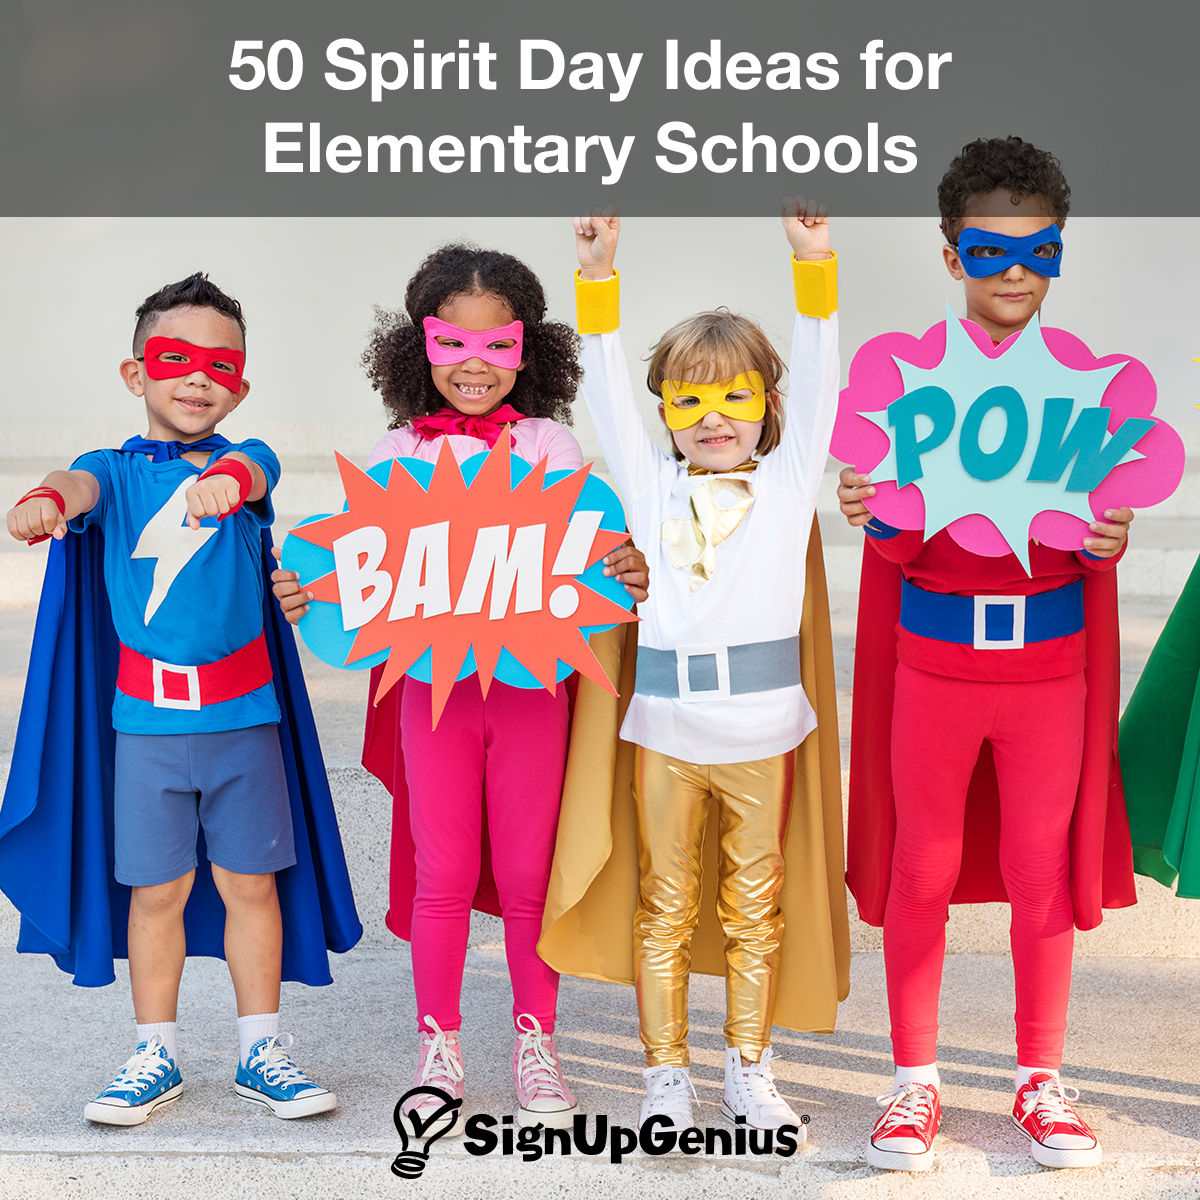 50 Spirit Day Ideas for Elementary Schools. Try these silly and creative costume themes for students at your next school spirit week. #characterdayspiritweek